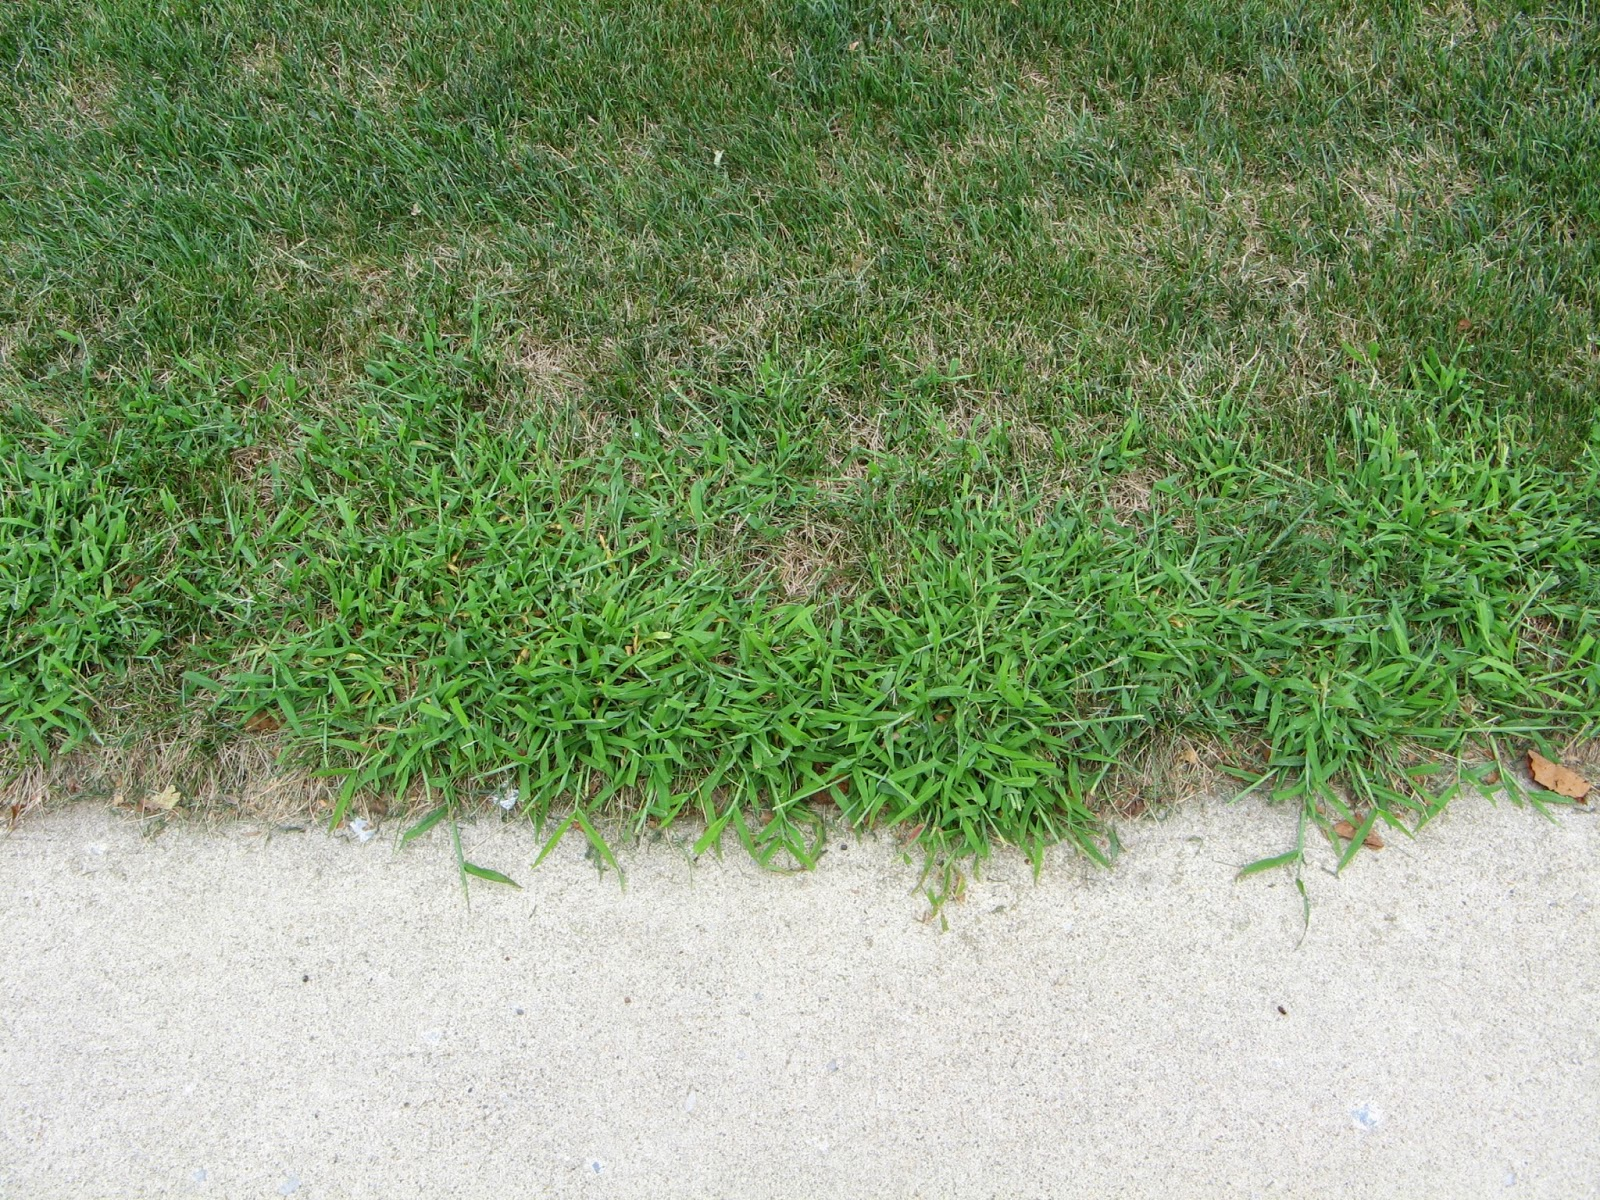 Crabgrass loves hot, dry conditions and easily out-competes the desired turfgrass.